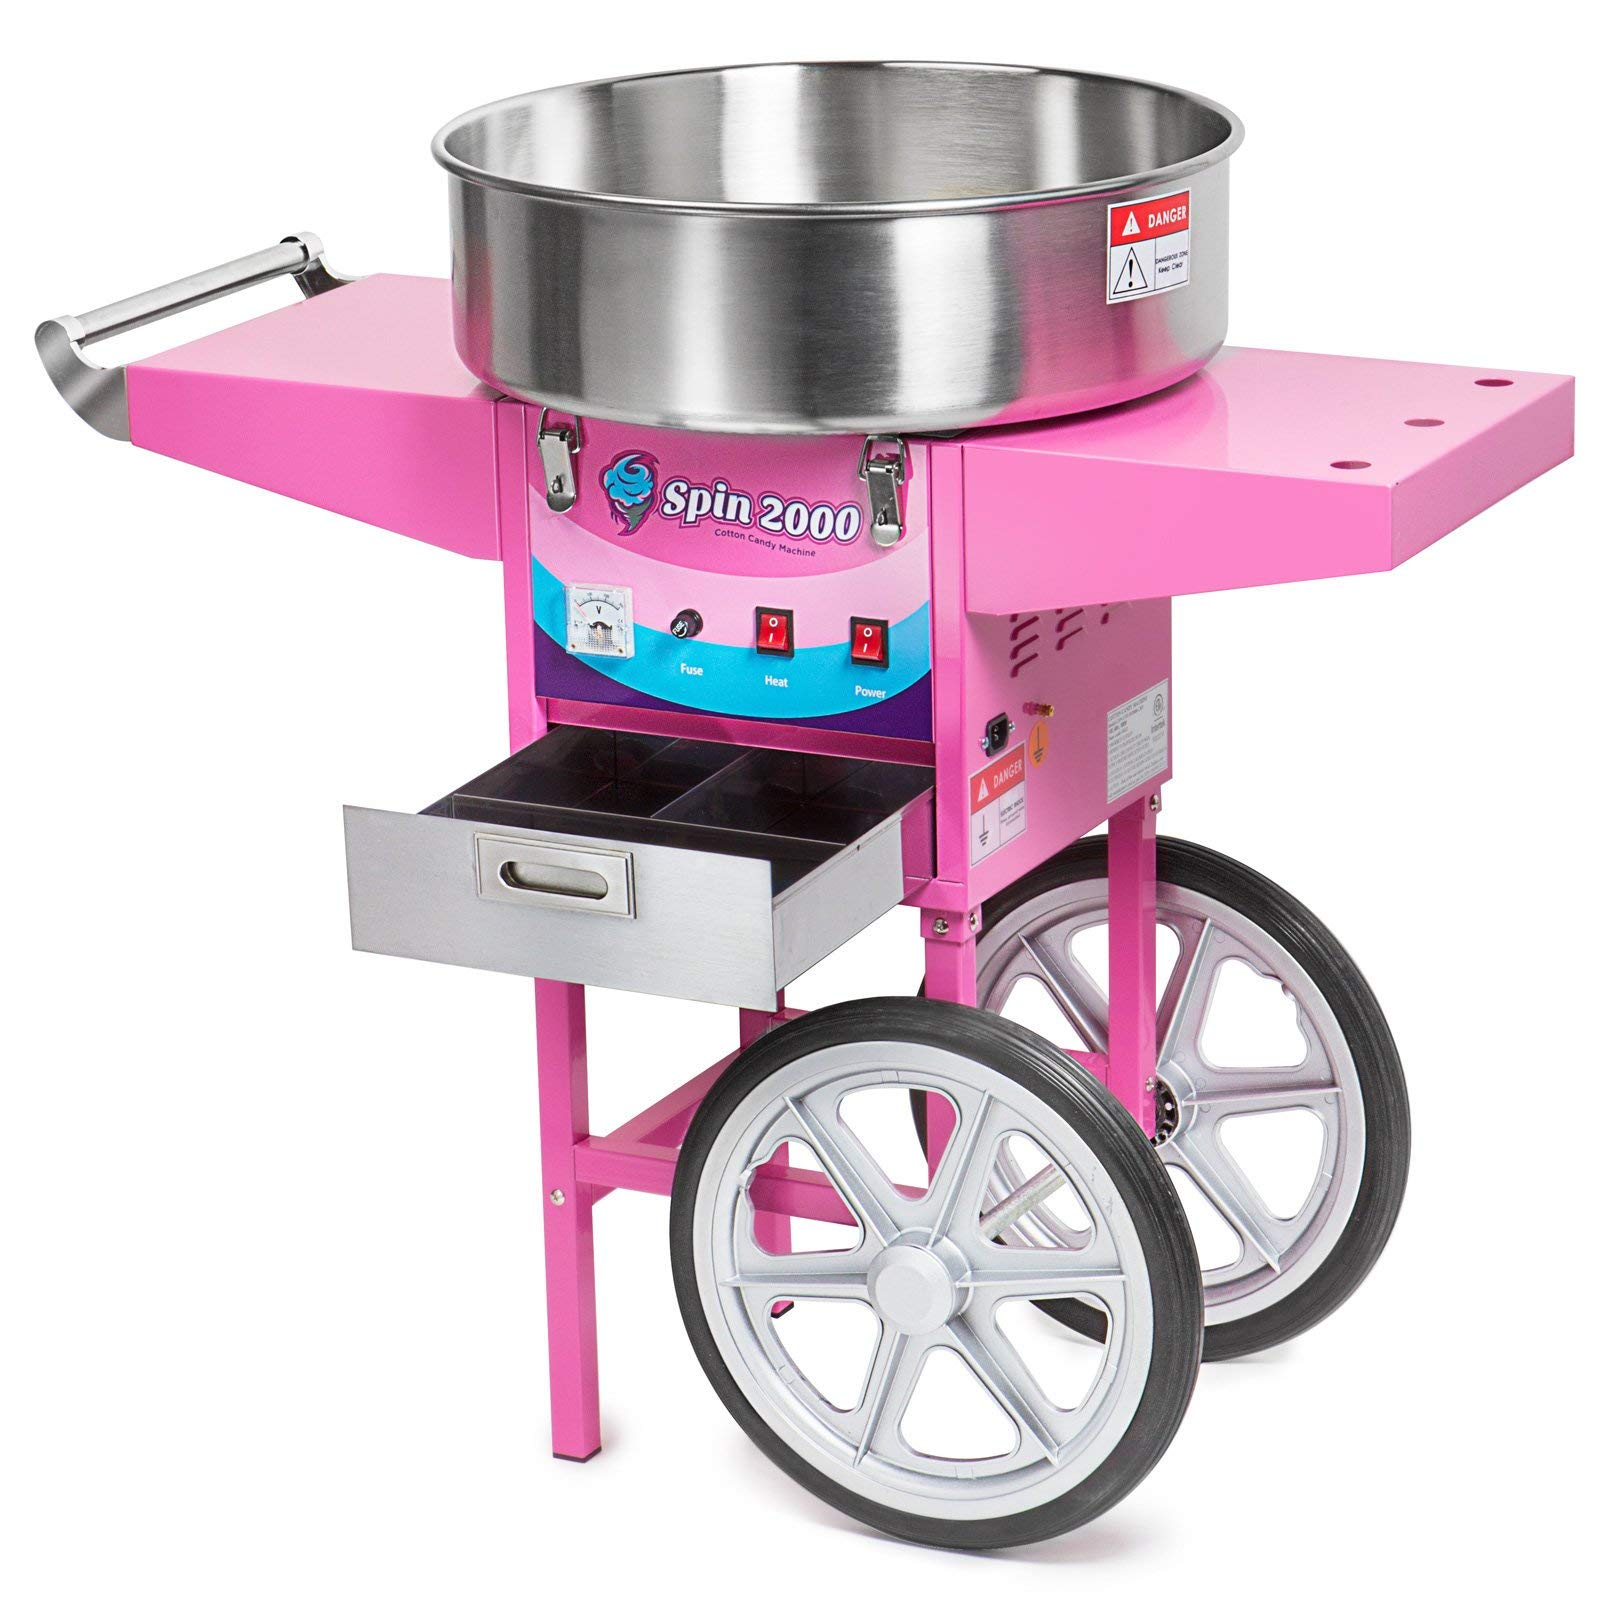 Olde Midway Commercial Quality Cotton Candy Machine Cart and Electric Candy Floss Maker - SPIN 2000 (Renewed) by Olde Midway (Image #4)